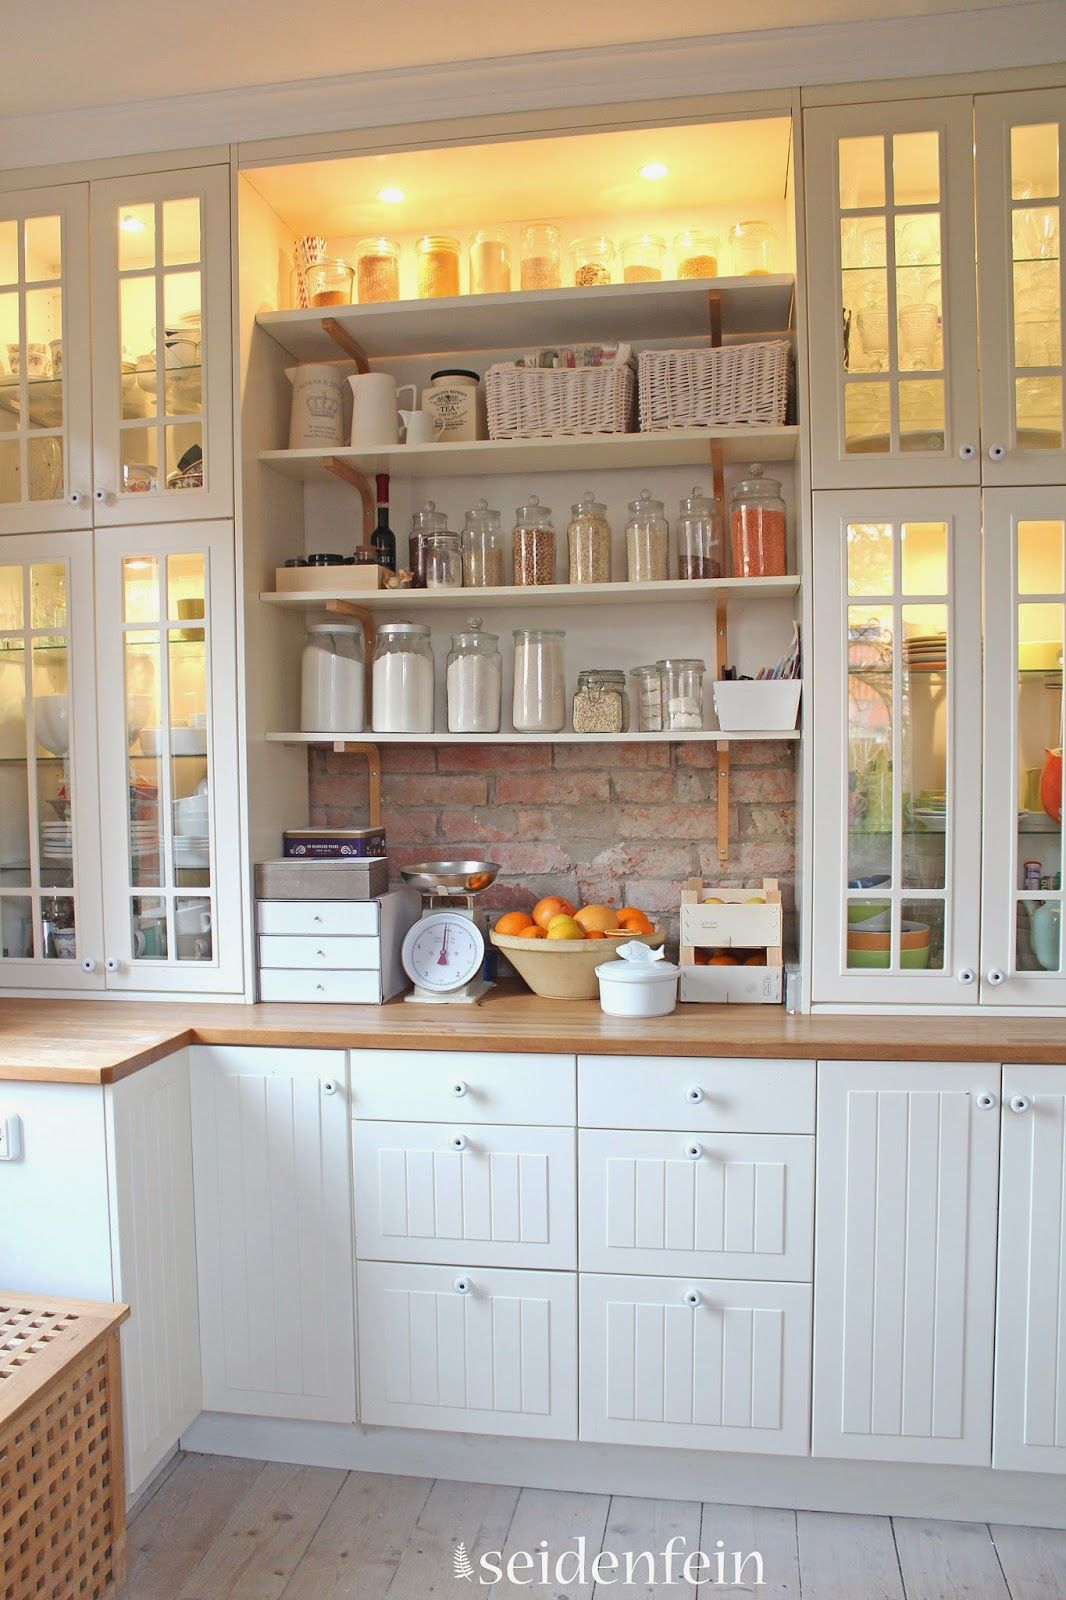 Such a charming kitchen :: seidenfeins Dekoblog: Küchen make-over ...